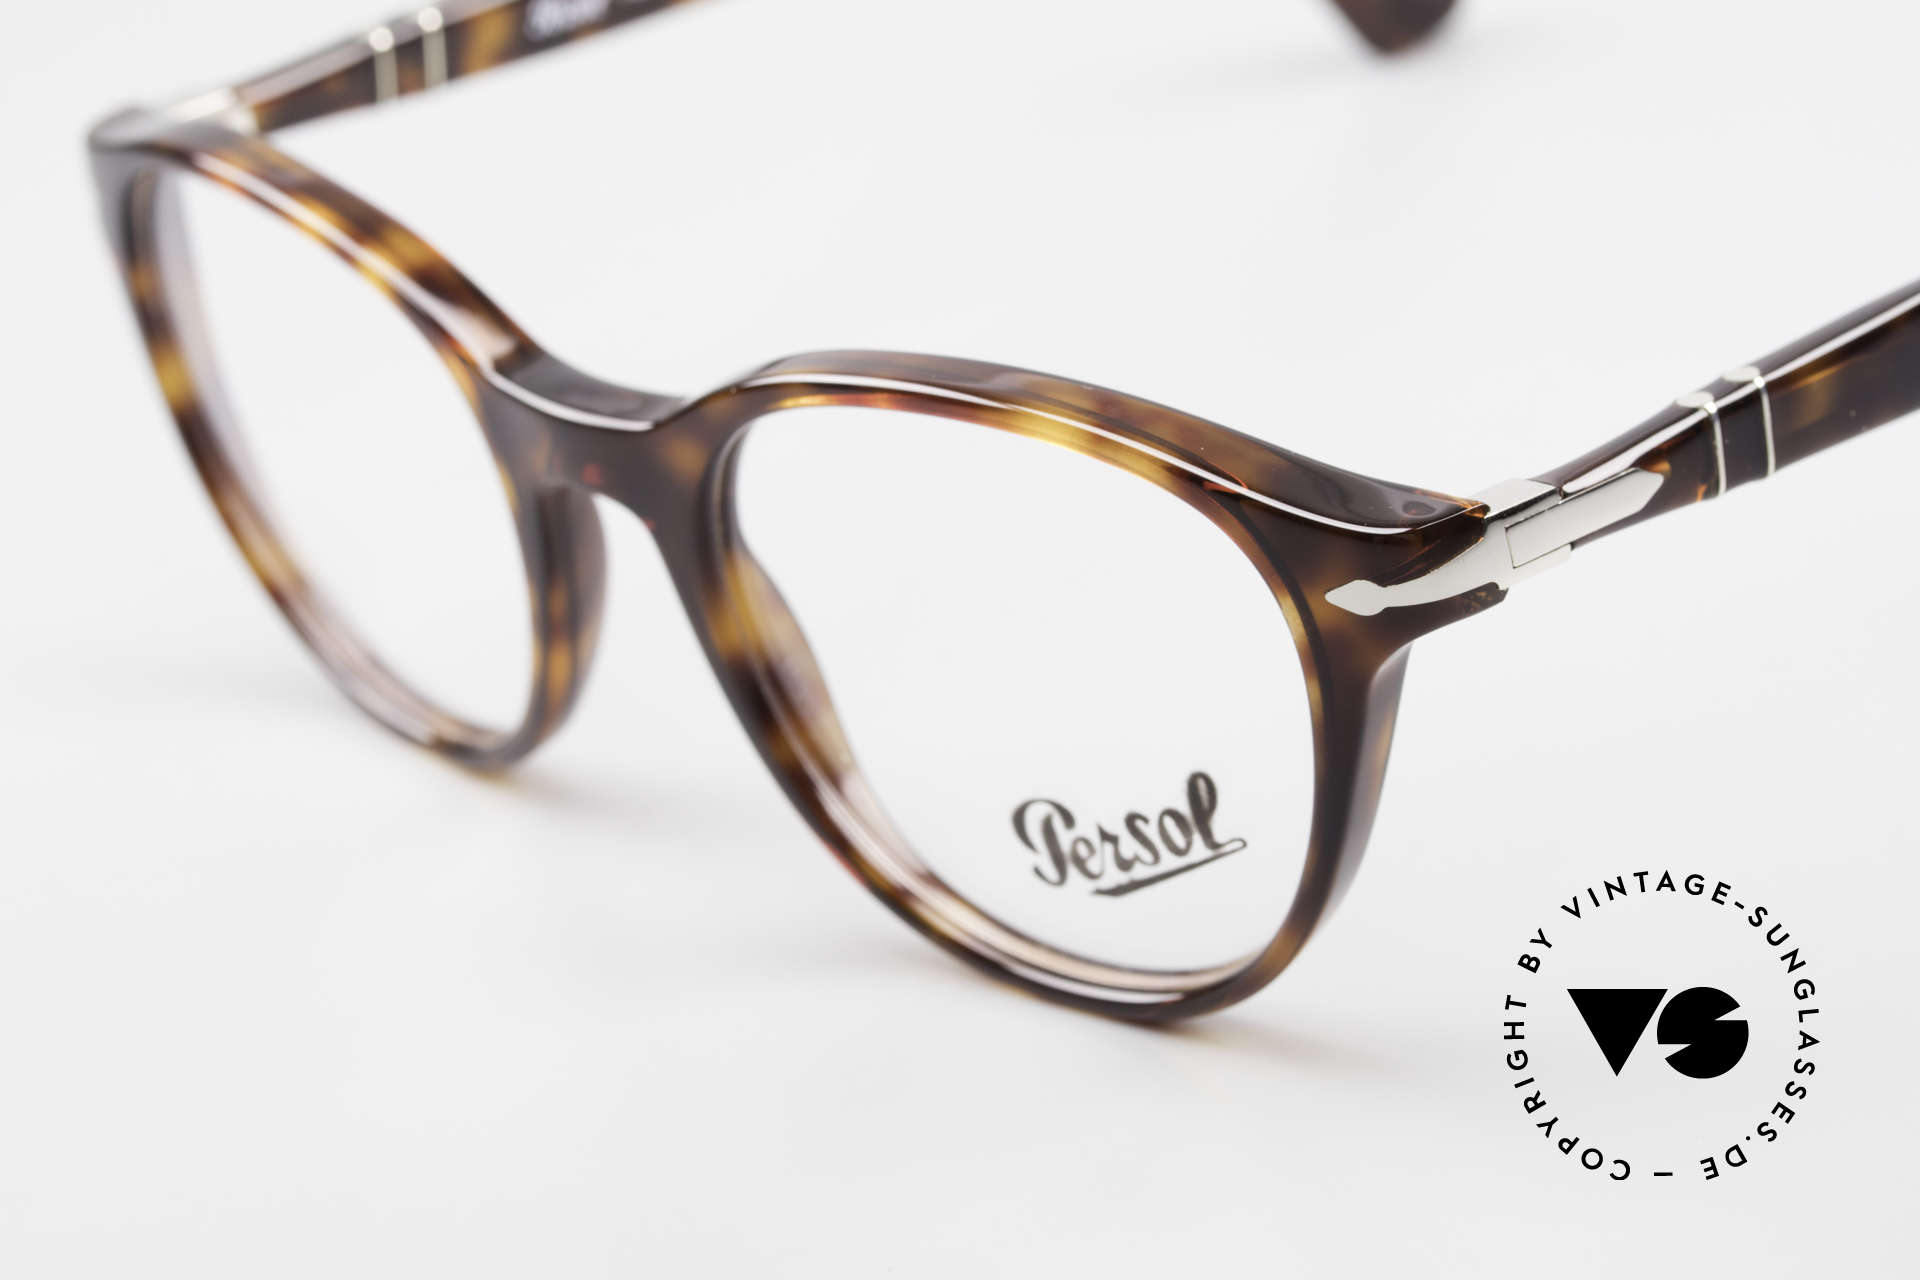 Persol 3153 Timeless Panto Unisex Frame, unworn (like all our classic PERSOL eyeglasses), Made for Men and Women